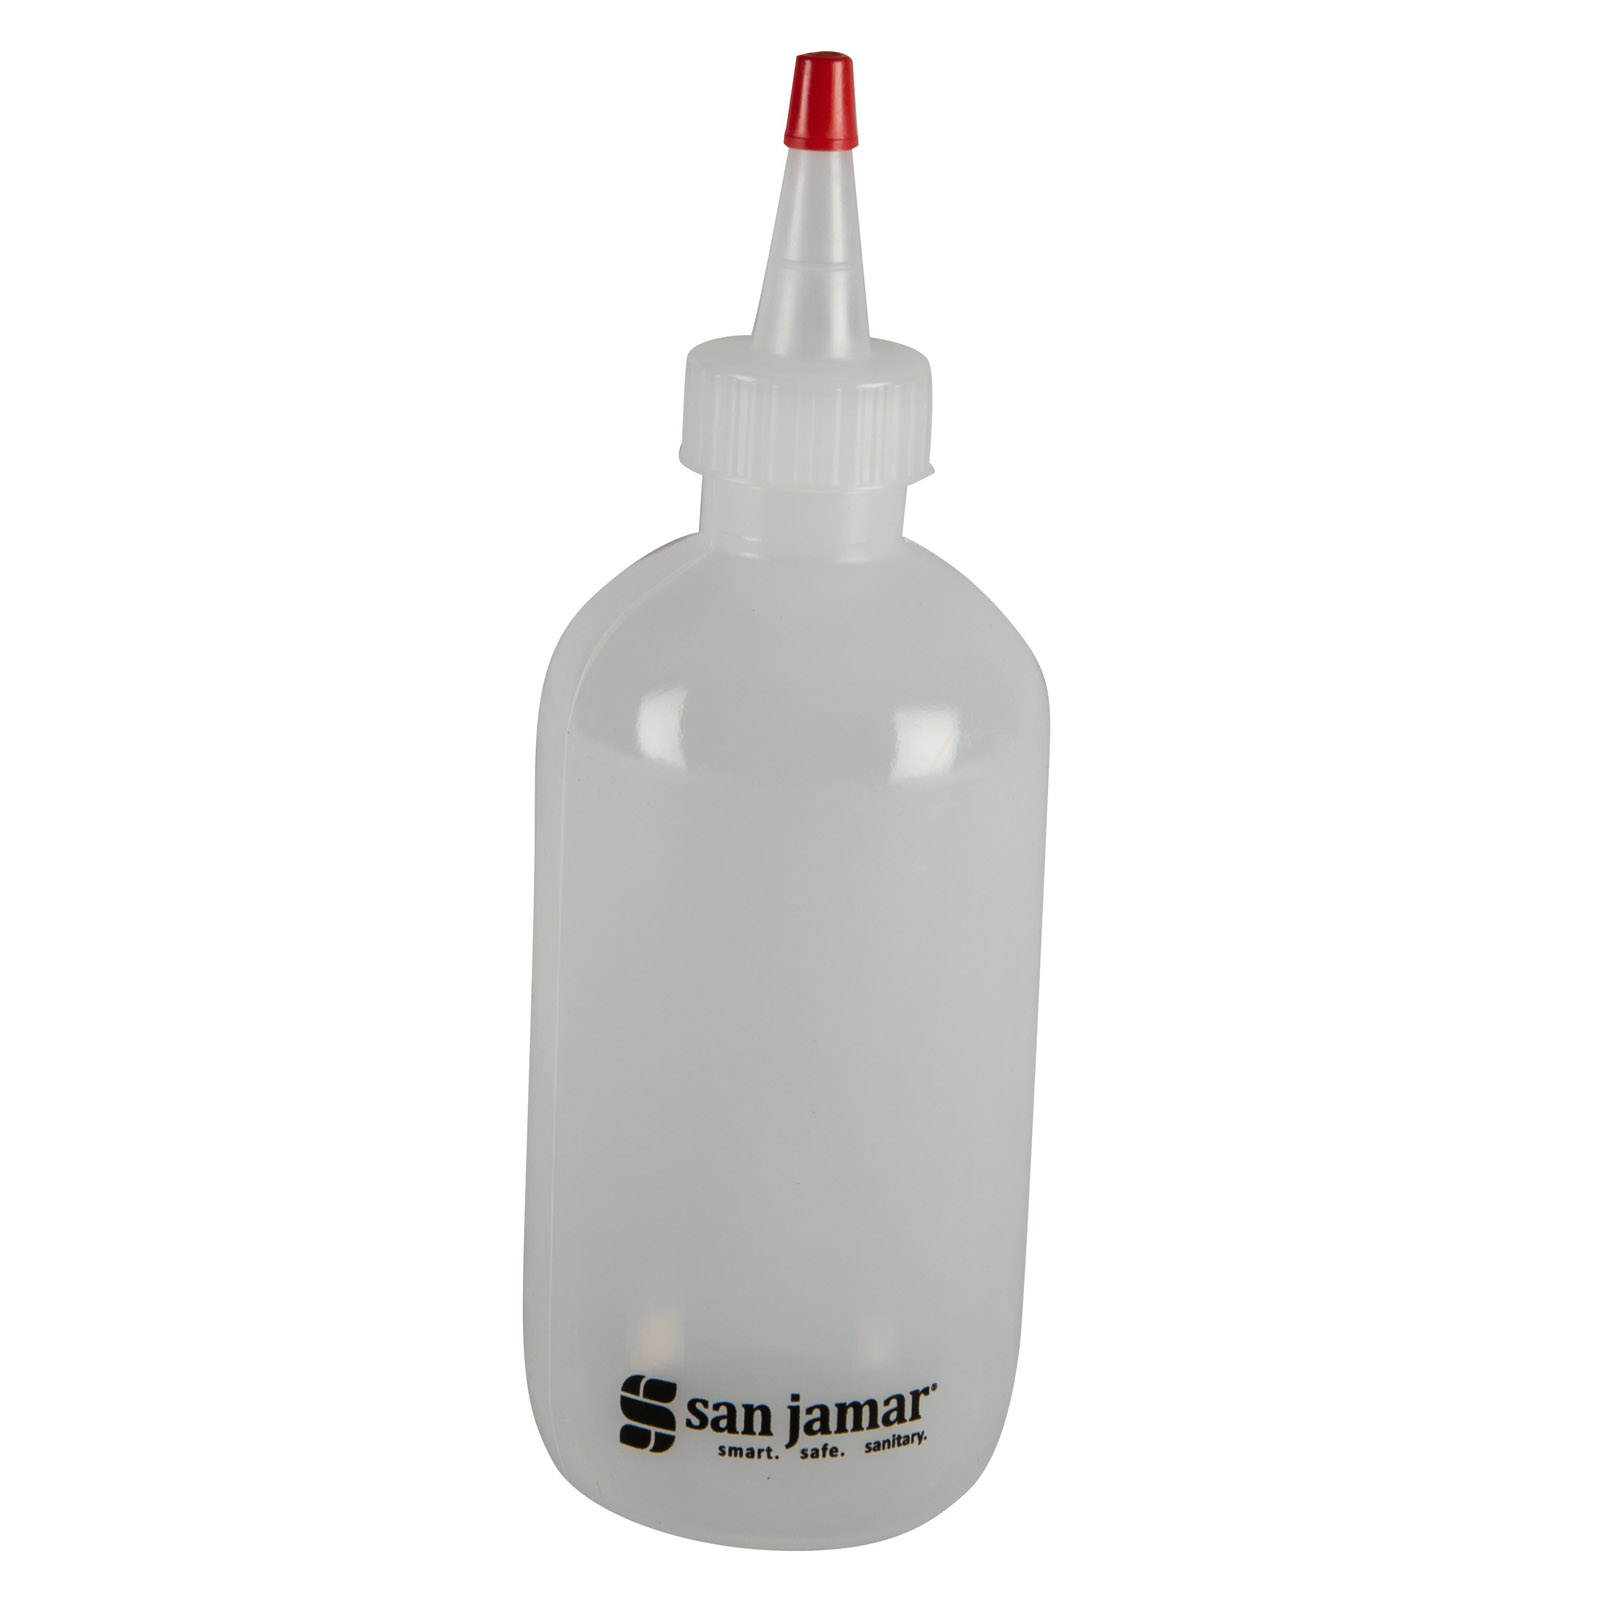 San Jamar P8008 squeeze bottle